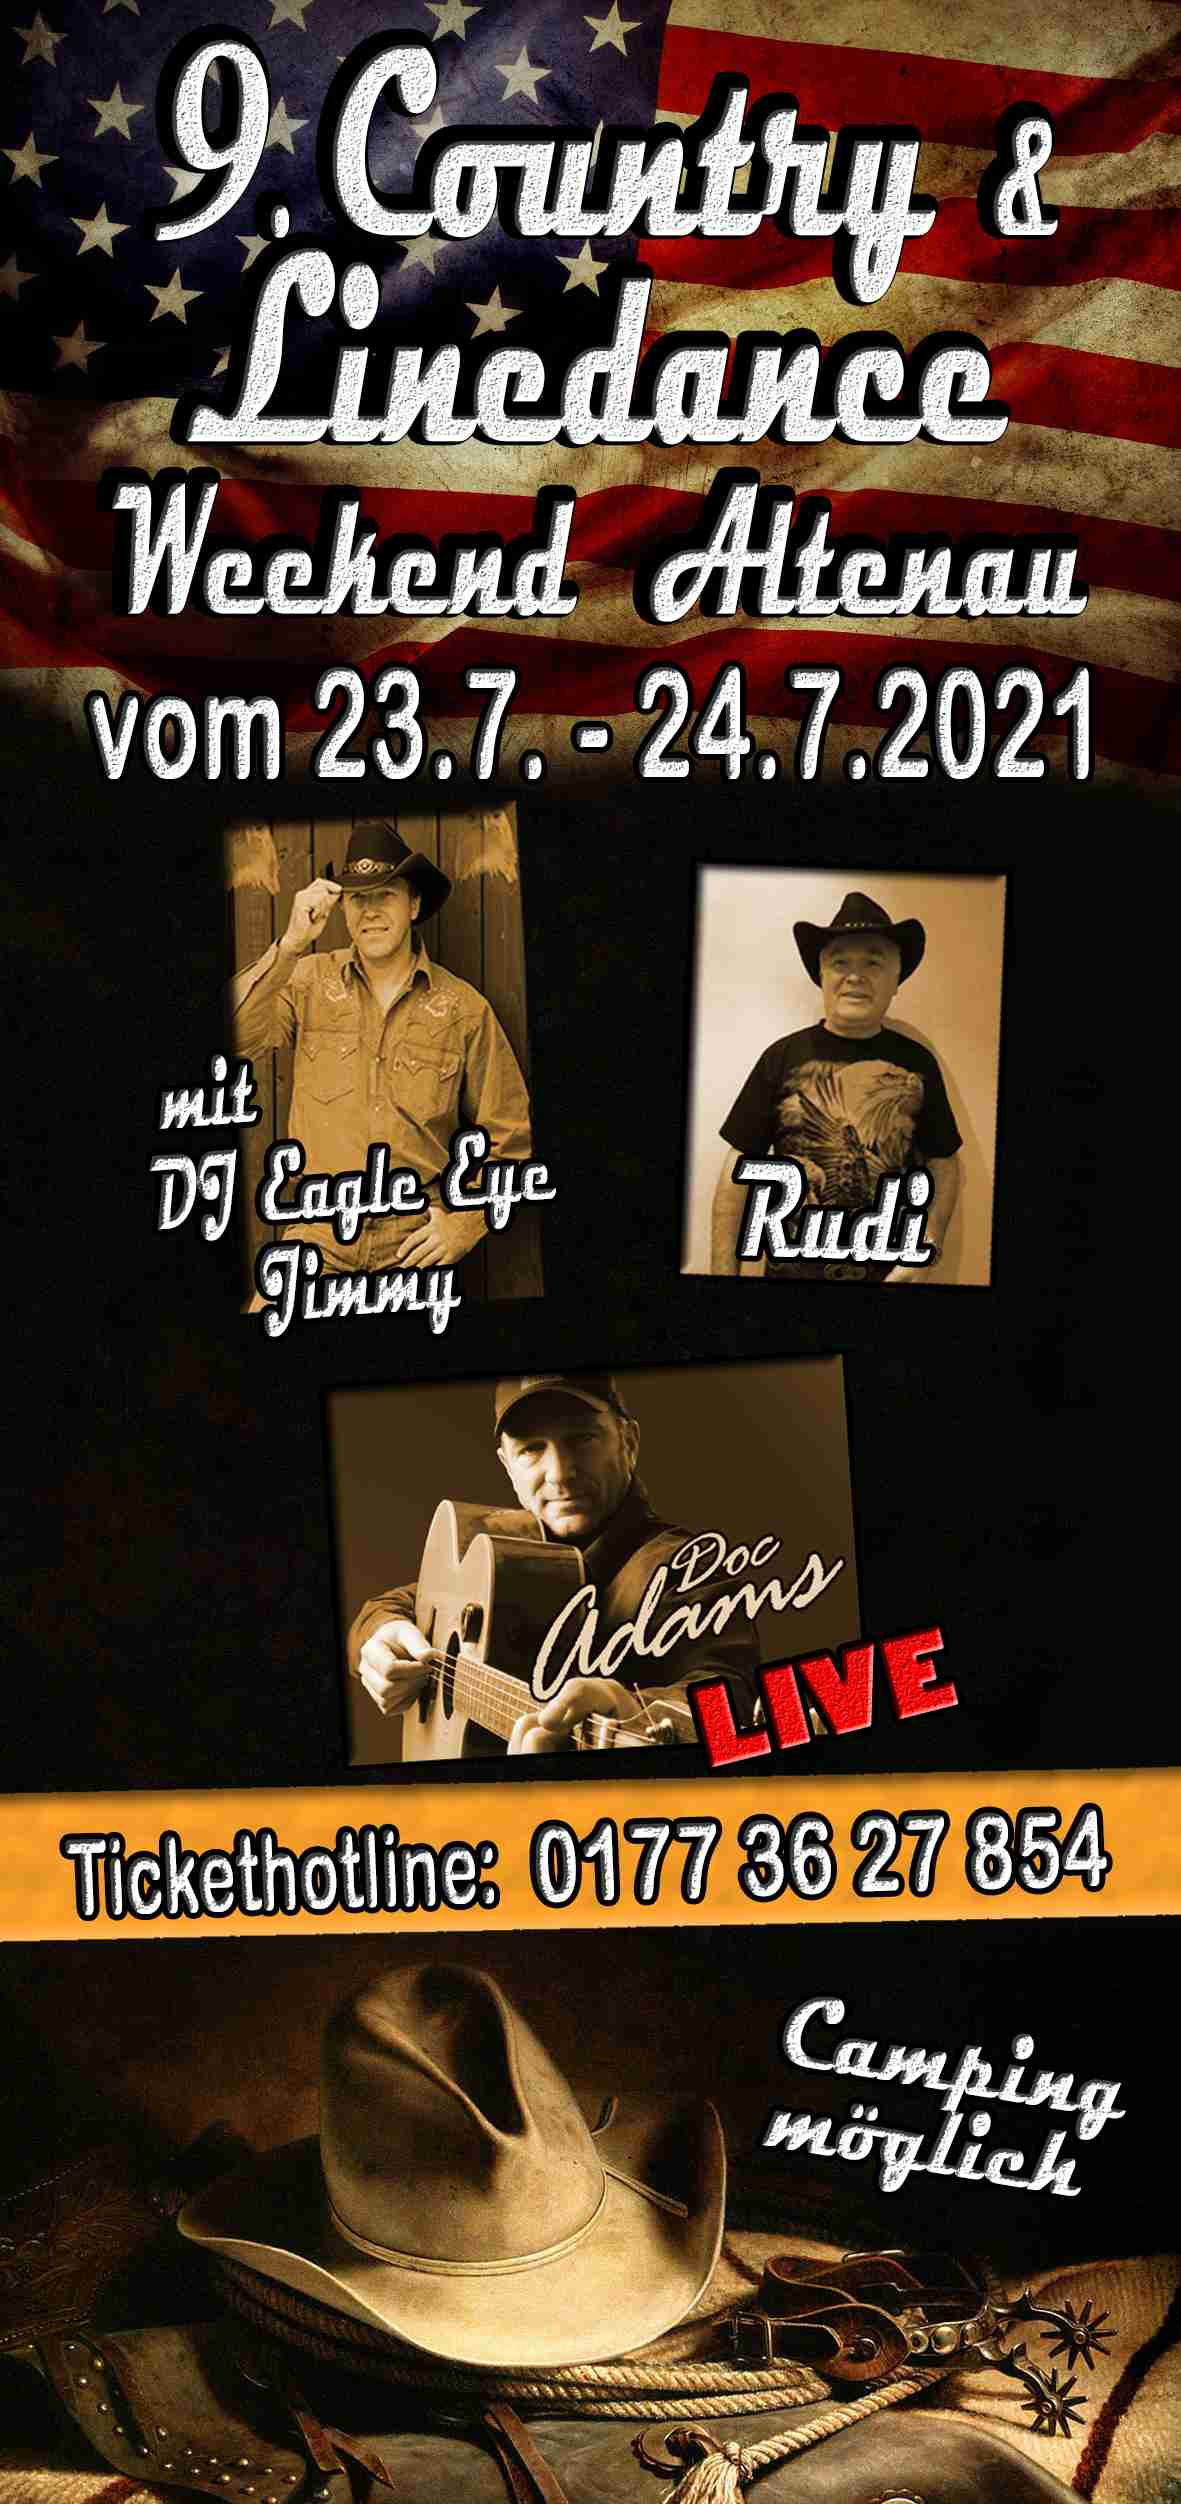 9.Altenauer Country & Linedance Weekend